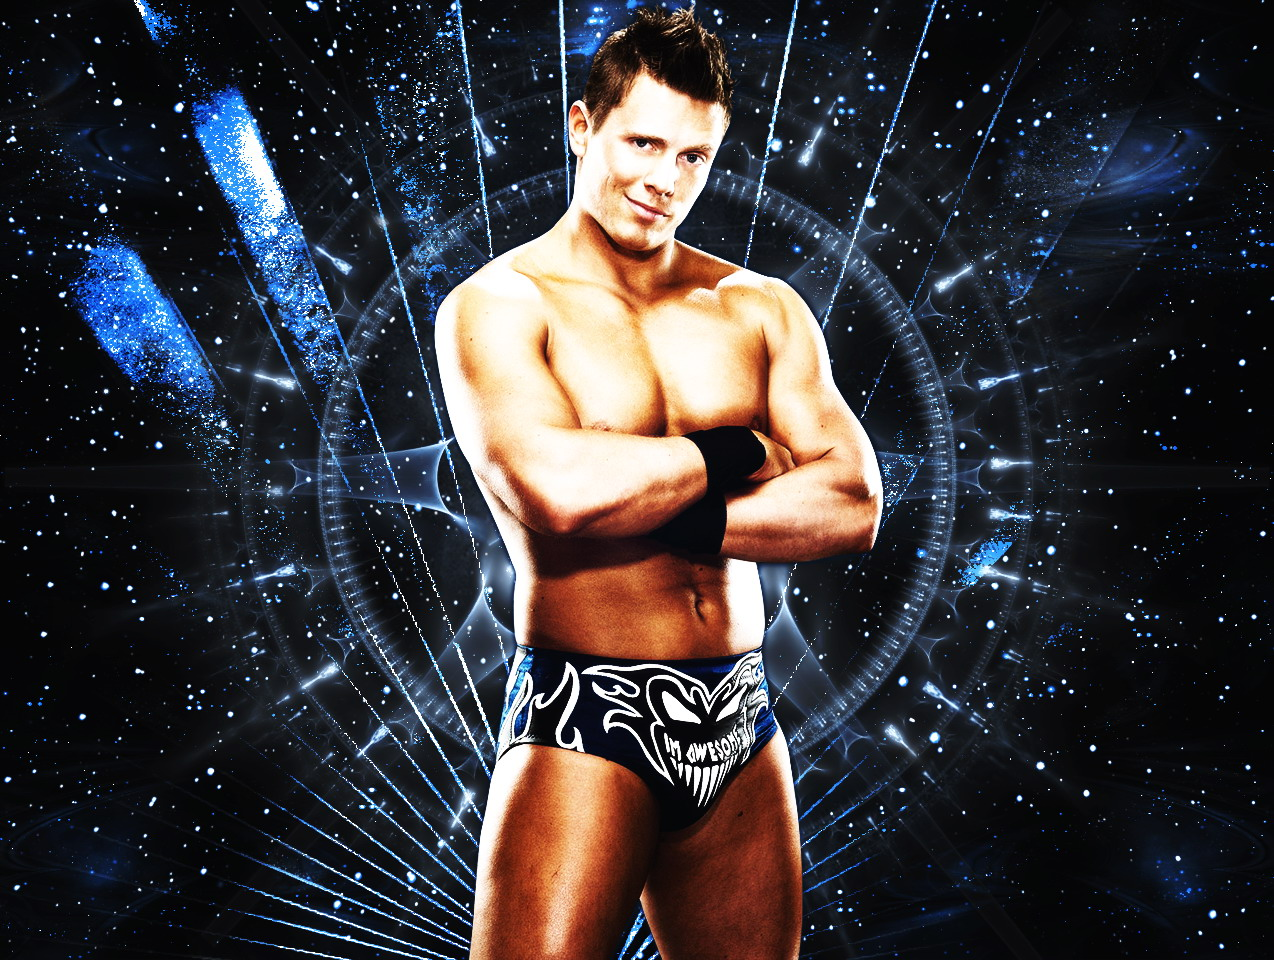 http://images5.fanpop.com/image/photos/31600000/The-Miz-the-miz-michael-mizanin-31689171-1274-960.jpg